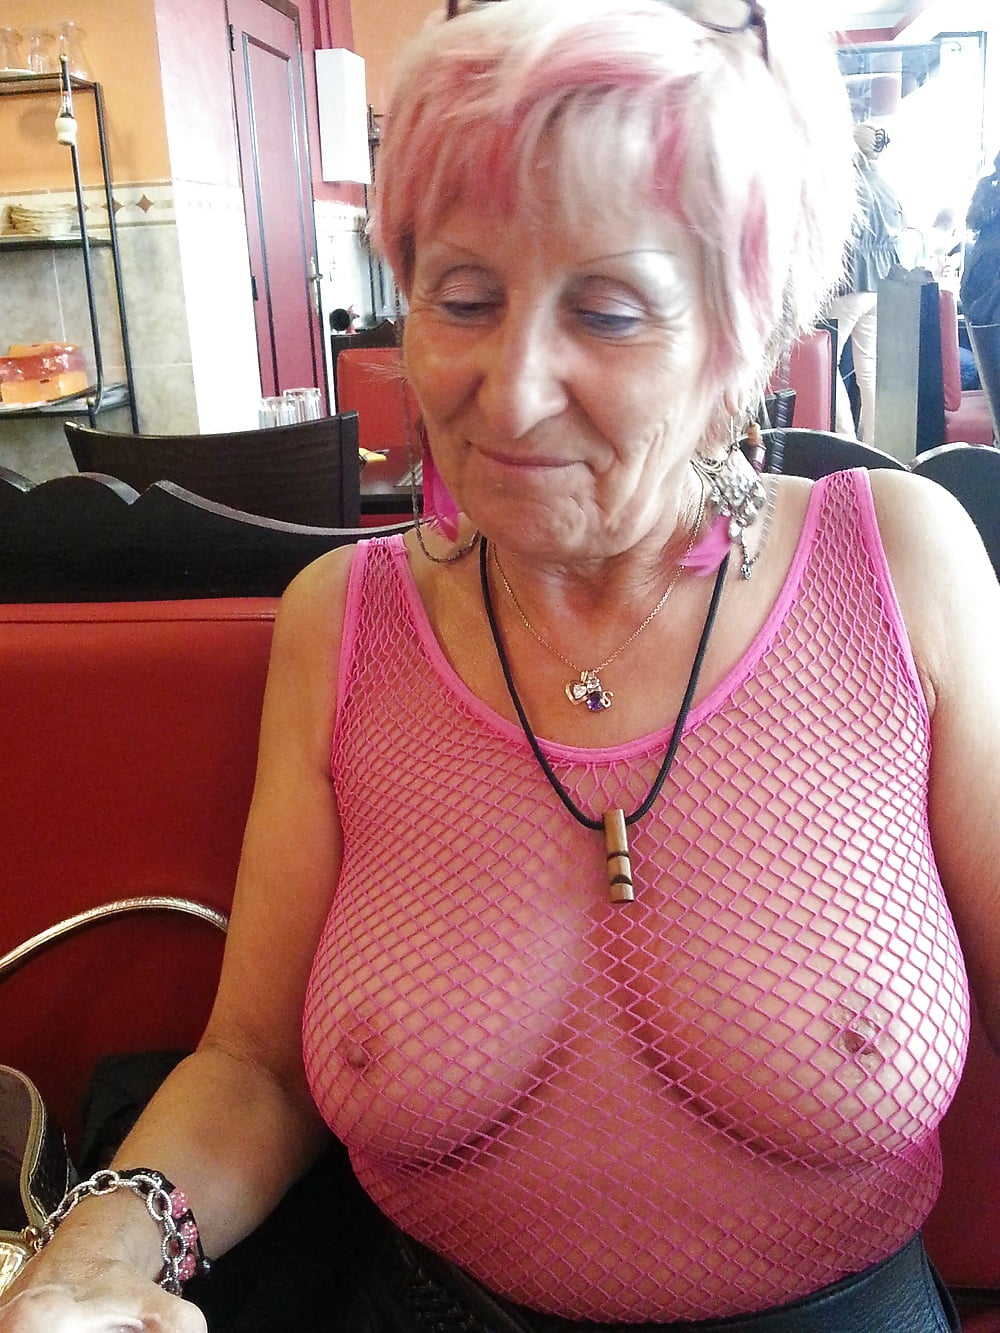 Sexy Old French Granny - 46 Pics  Xhamster-2068